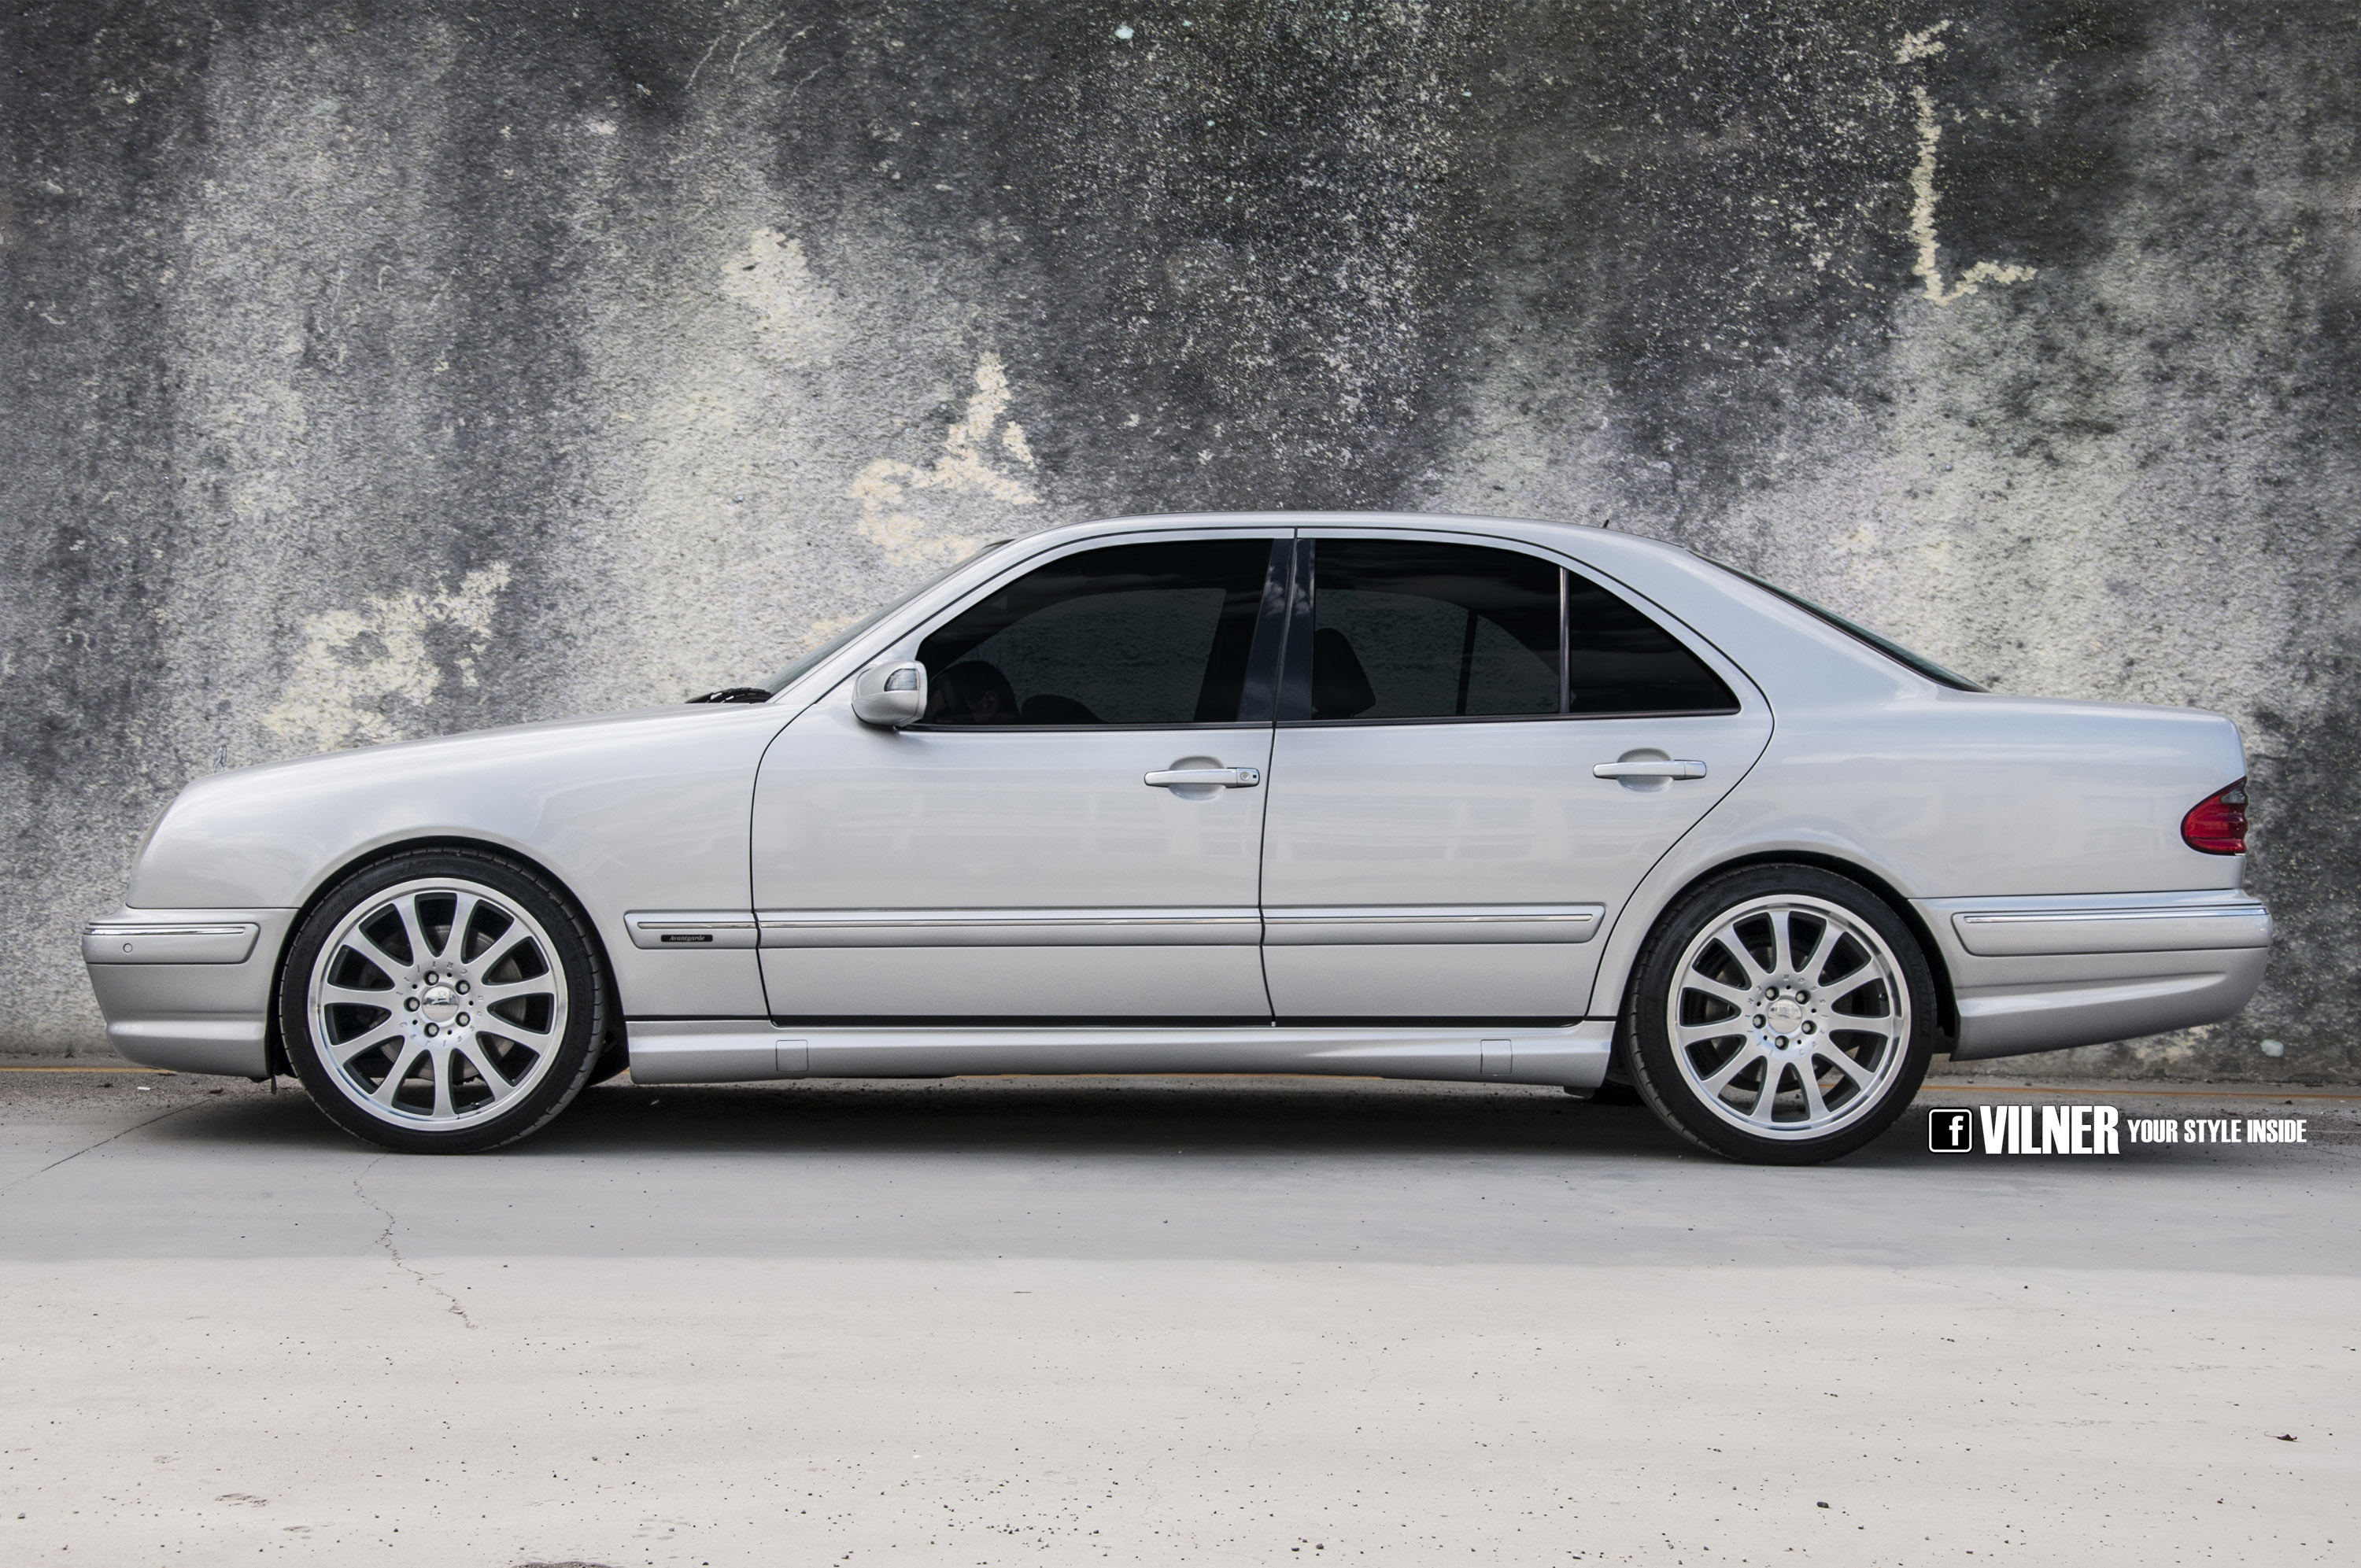 vilner-mercedes-benz-e55-amg-4matic-02 Interesting Info About 2001 E55 Amg with Terrific Images Cars Review